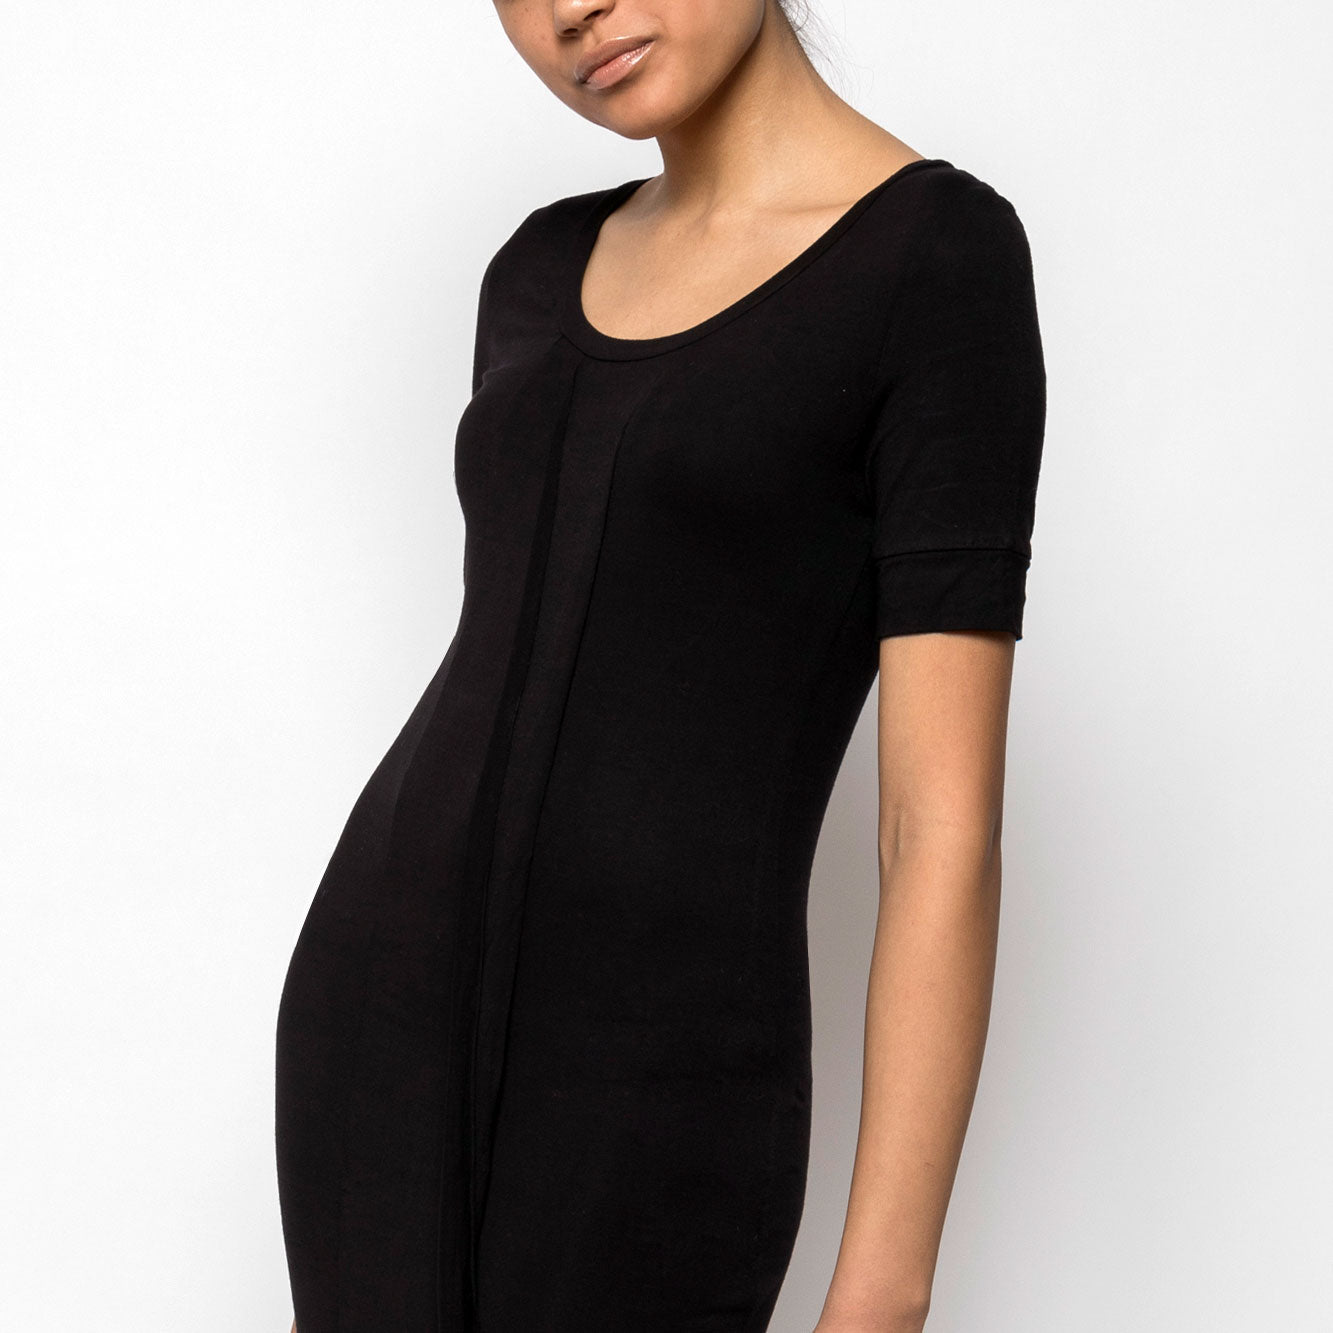 T-shirt dress - Tindi